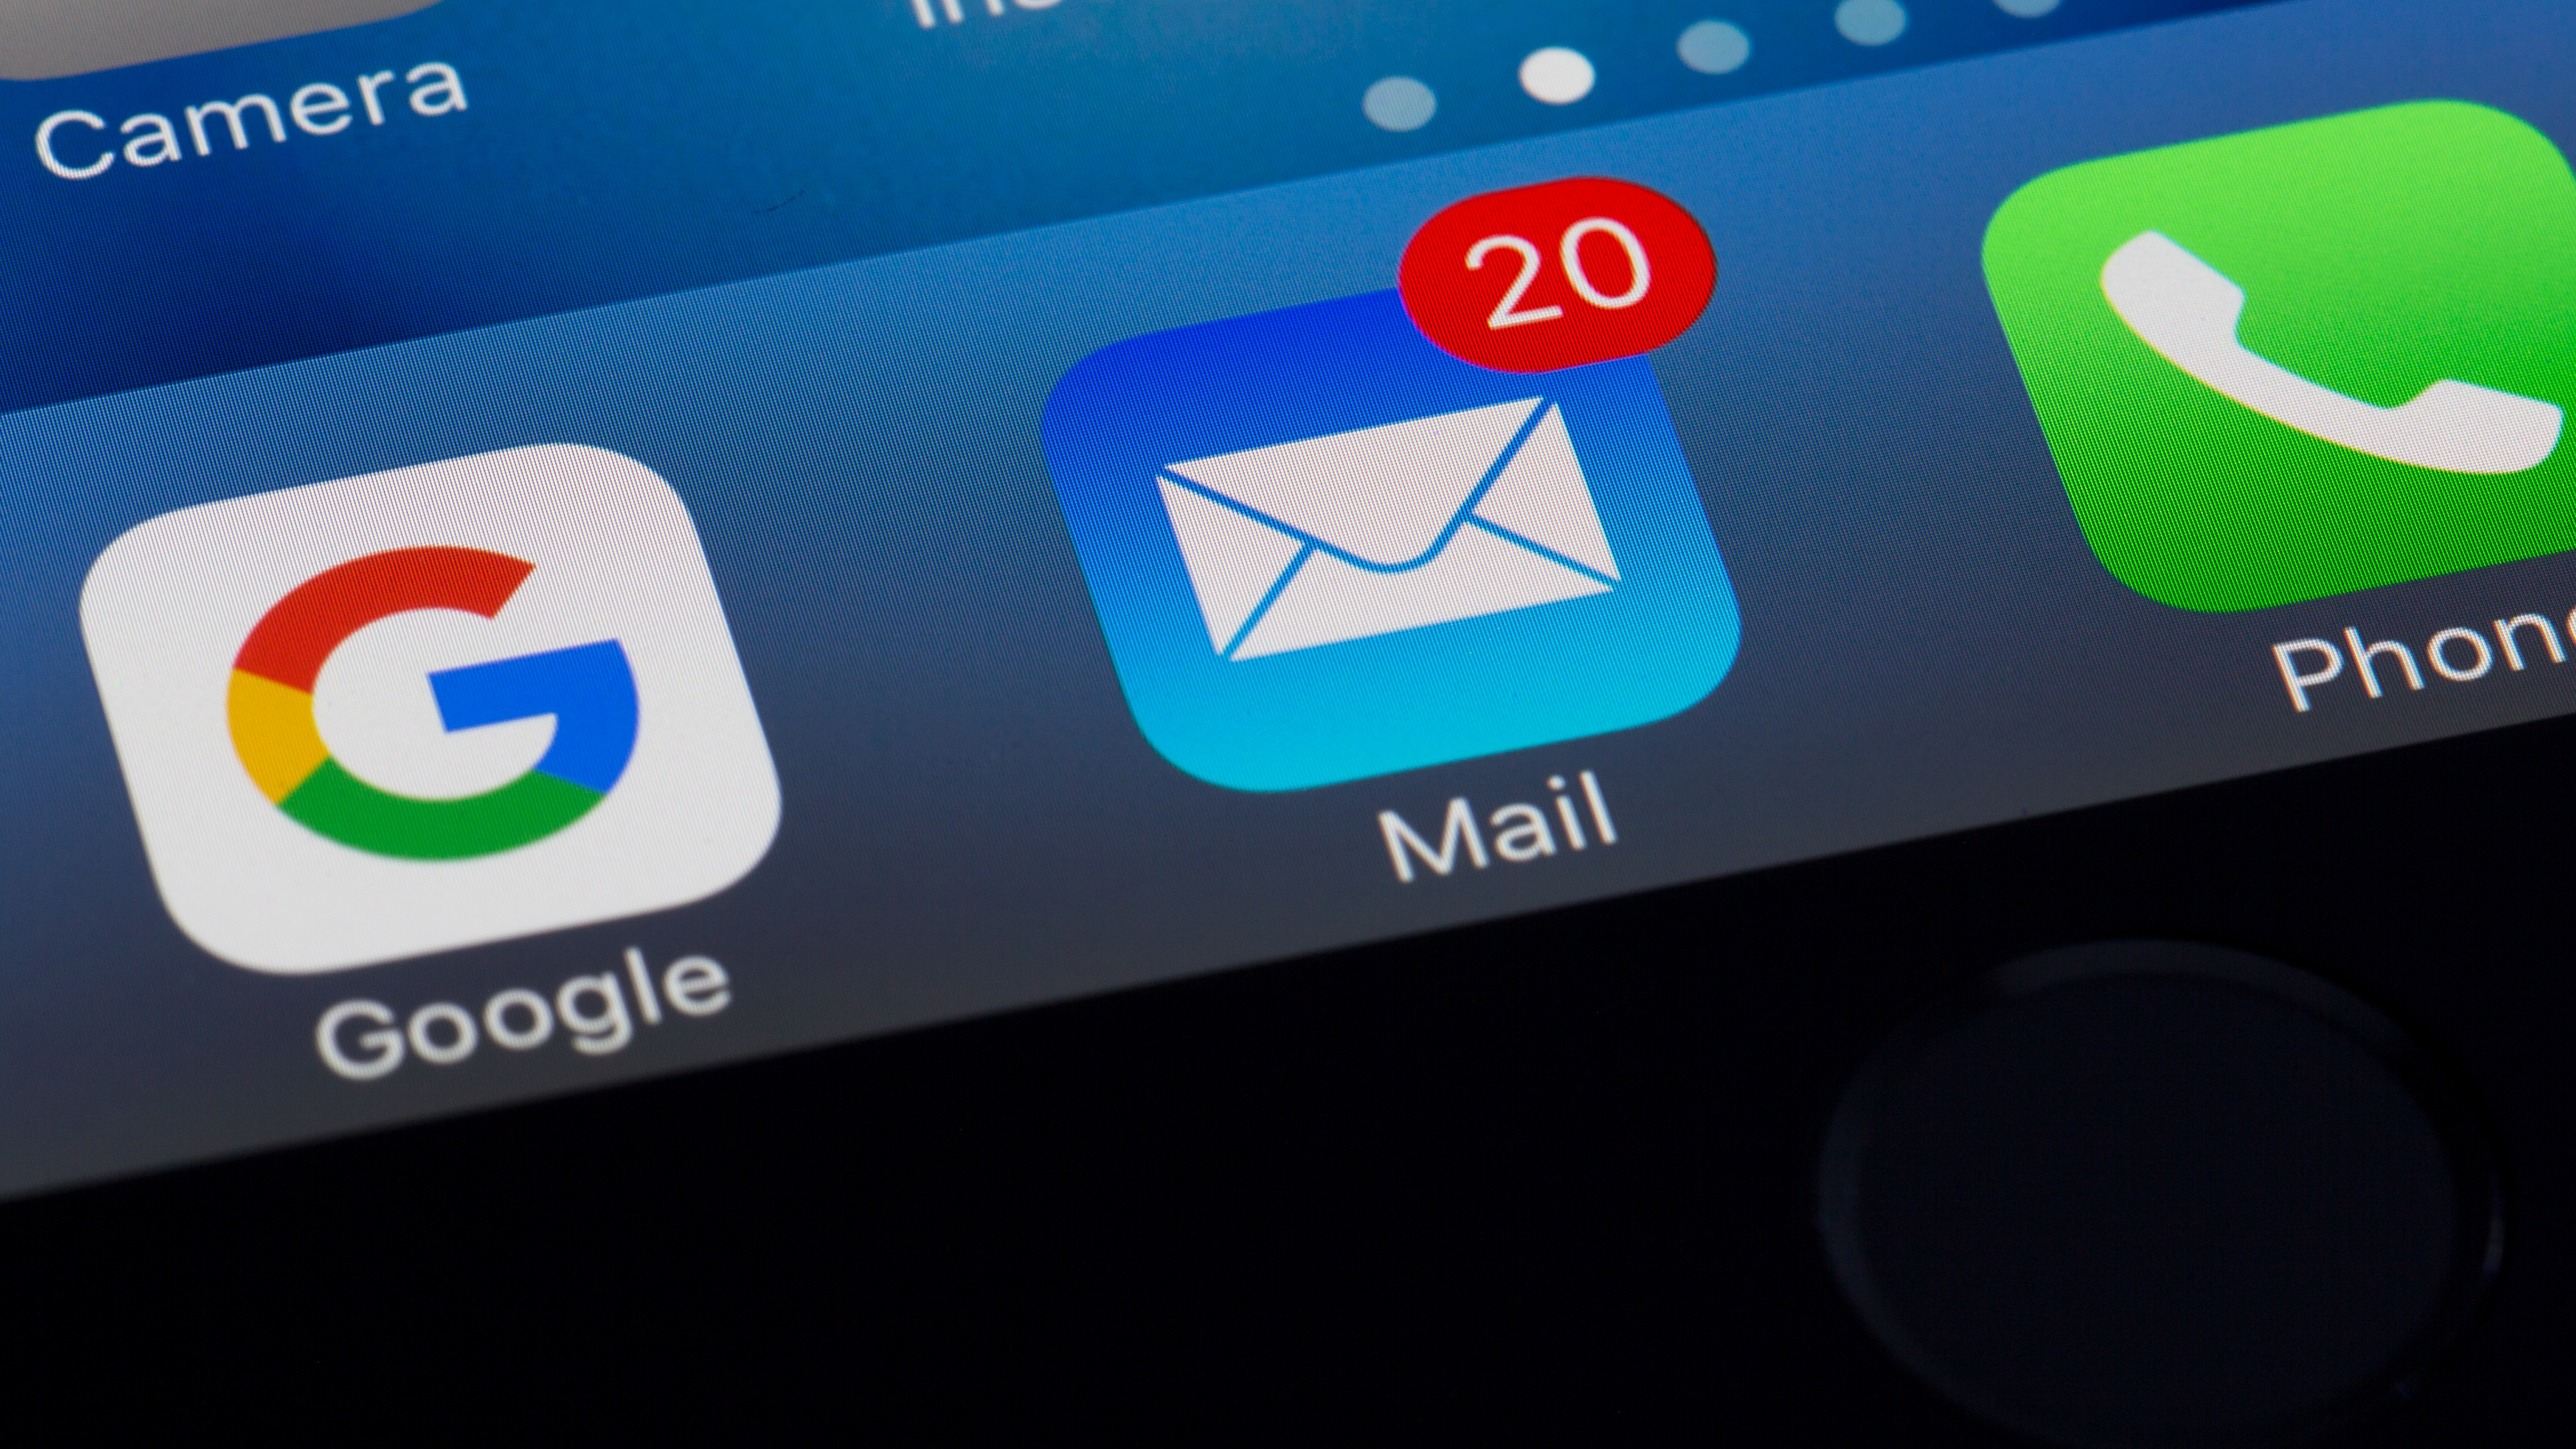 Google and email apps